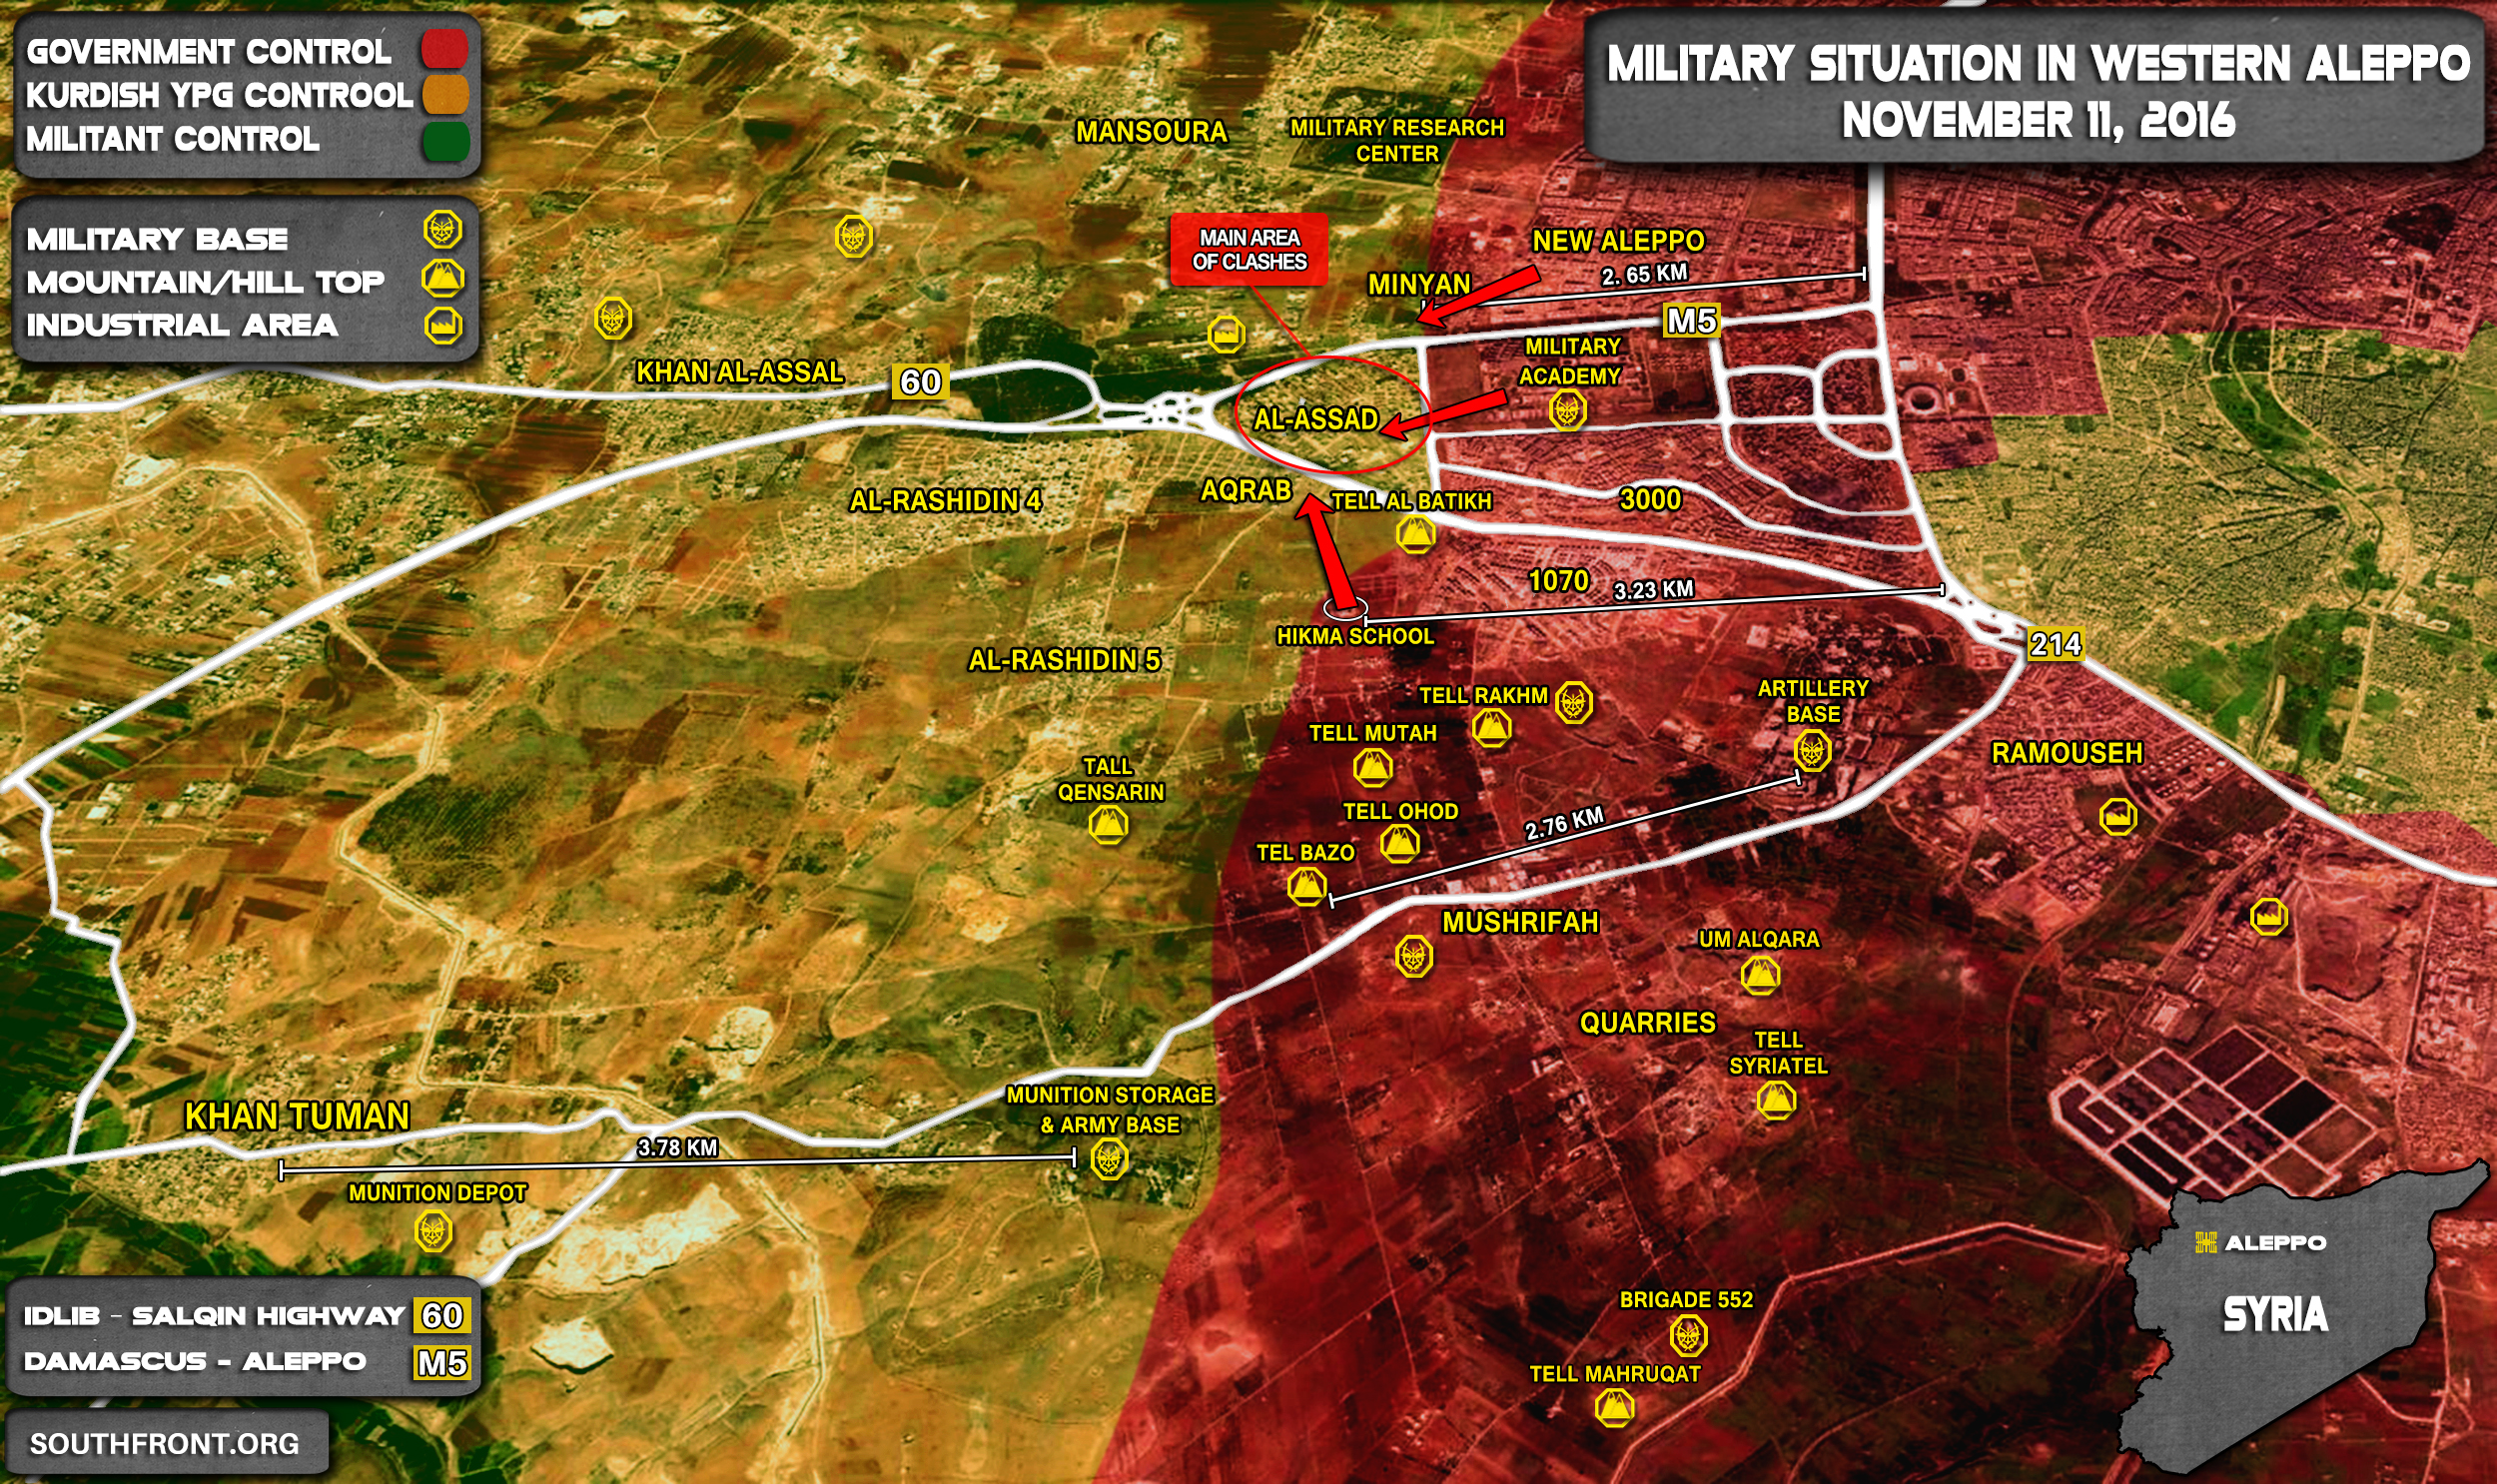 Overview of Military Situation in Aleppo City on November 11, 2016